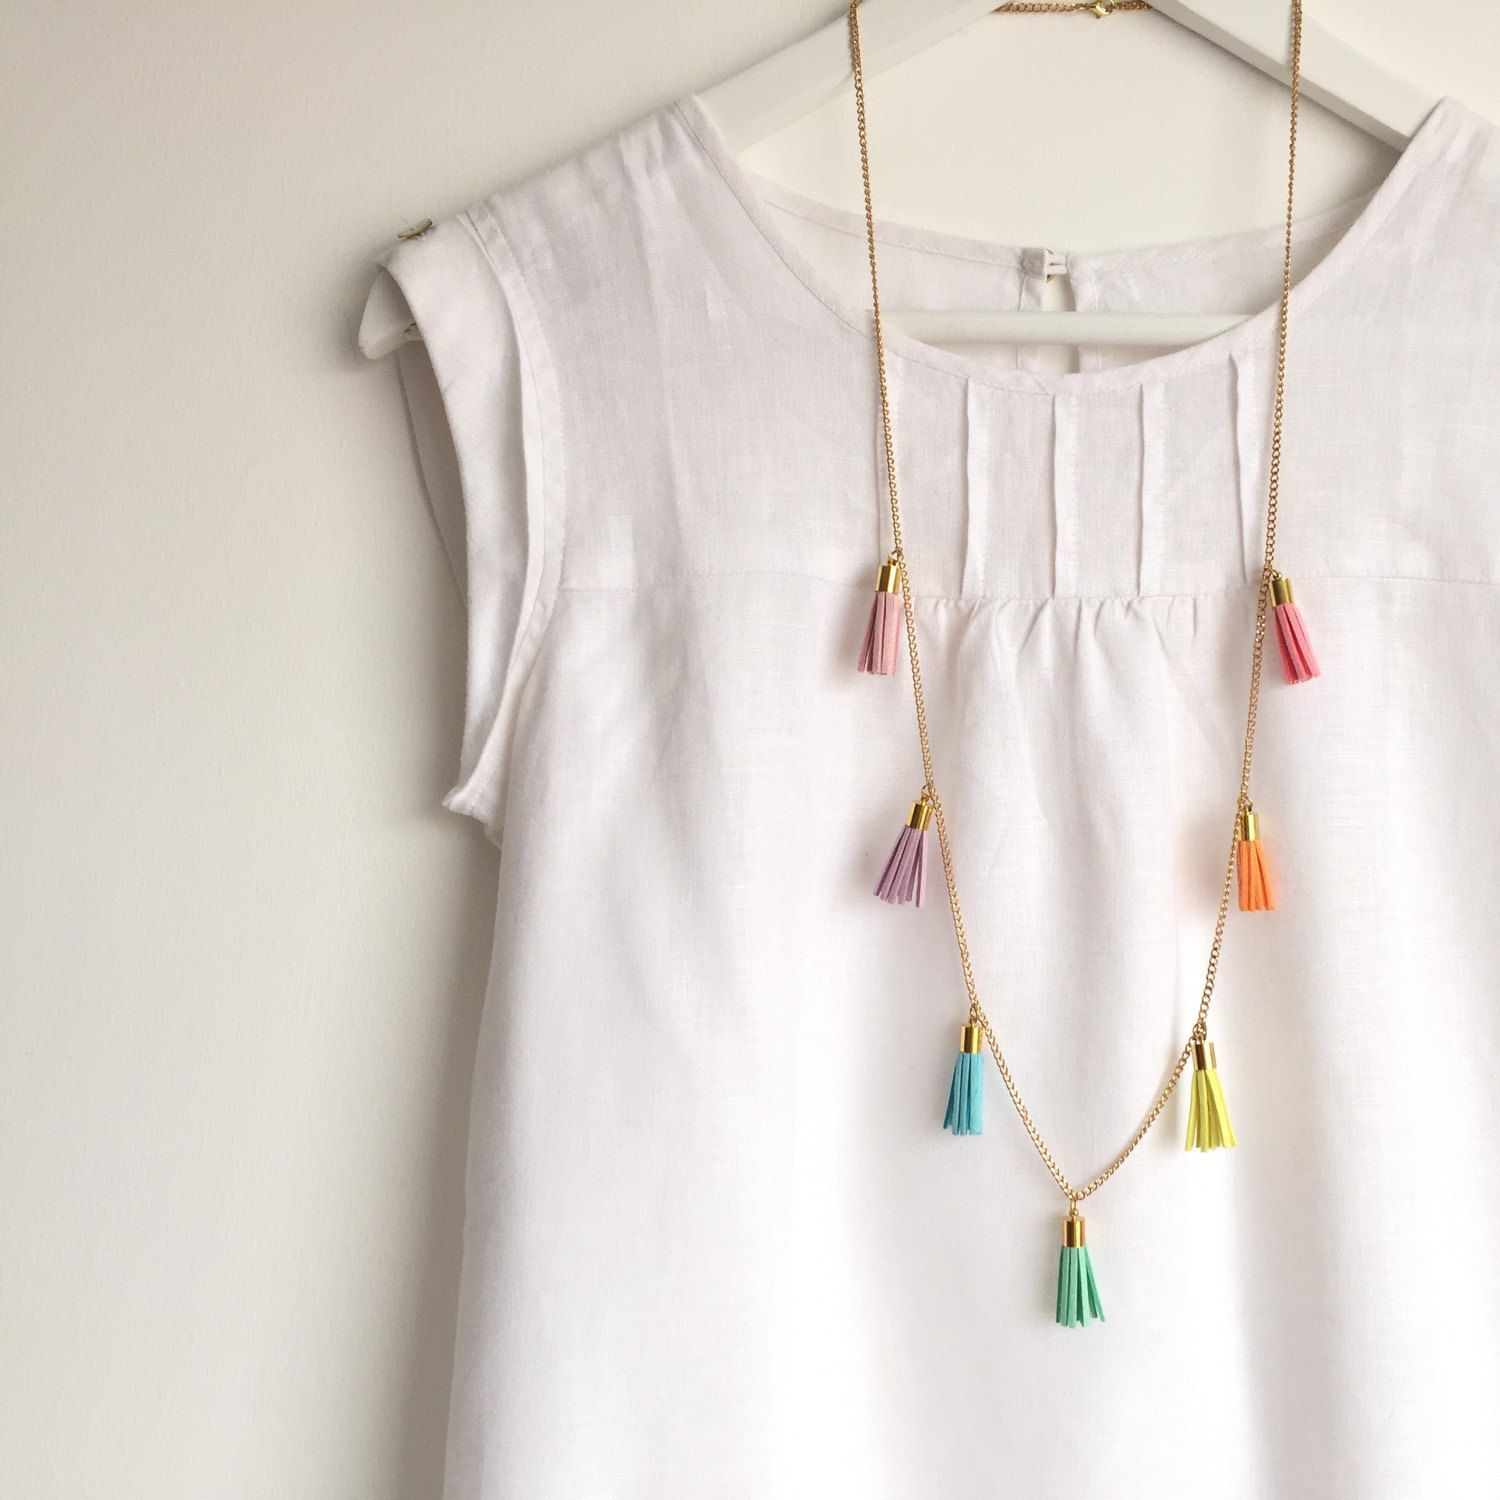 PASTEL RAINBOW Tassel Necklace – Colourful Long Necklace with 7 Tassels